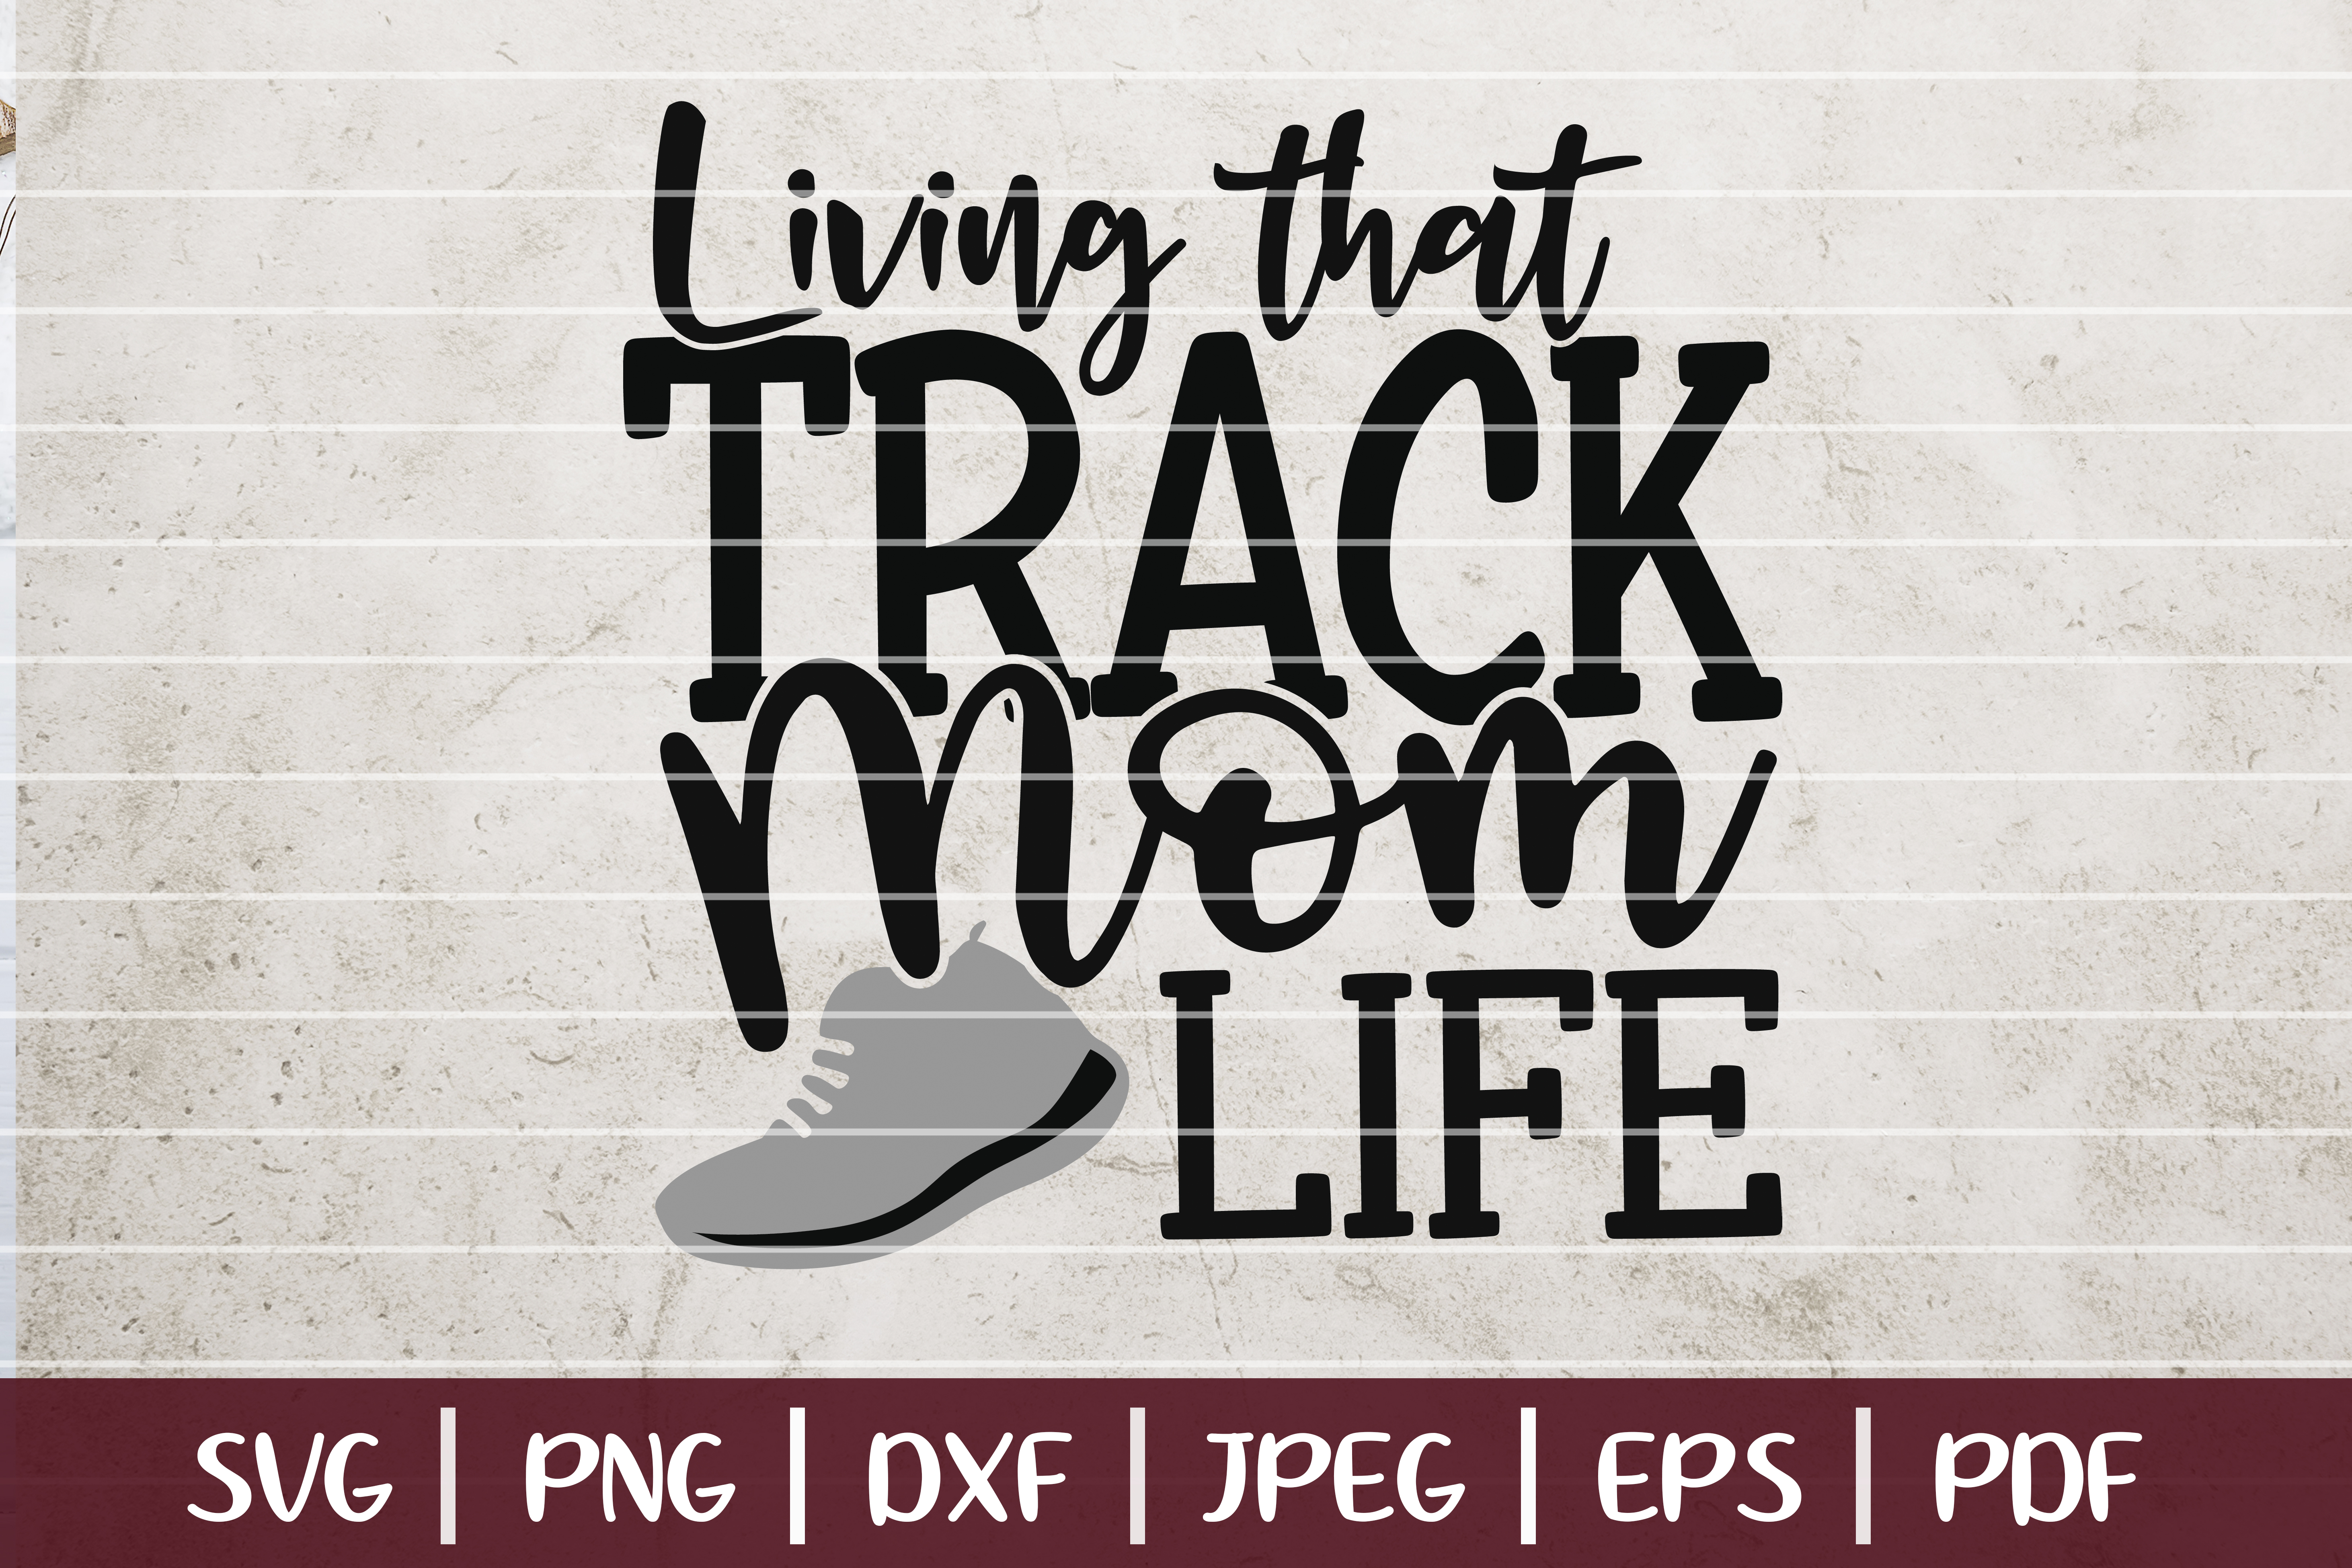 Living That Track Mom Life Graphic By Seventhheaven Studios